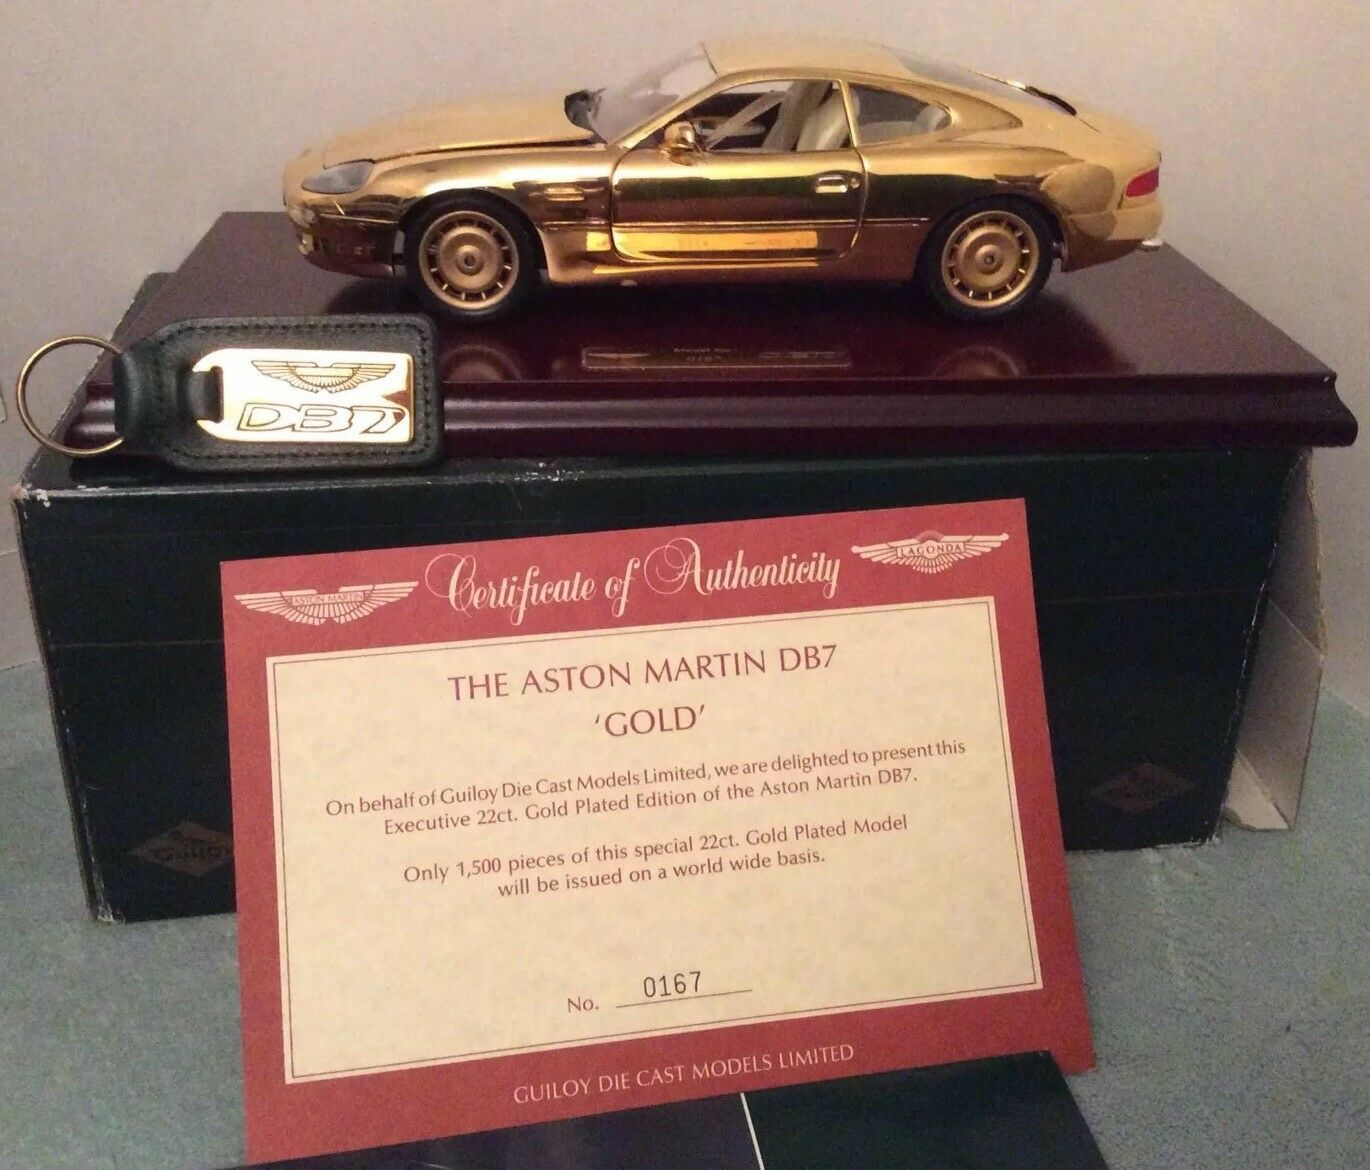 LTD ED GUILOY 24 ct plaqué or ASTON MARTIN DB7  167 de 1500 COA, keyring, livret